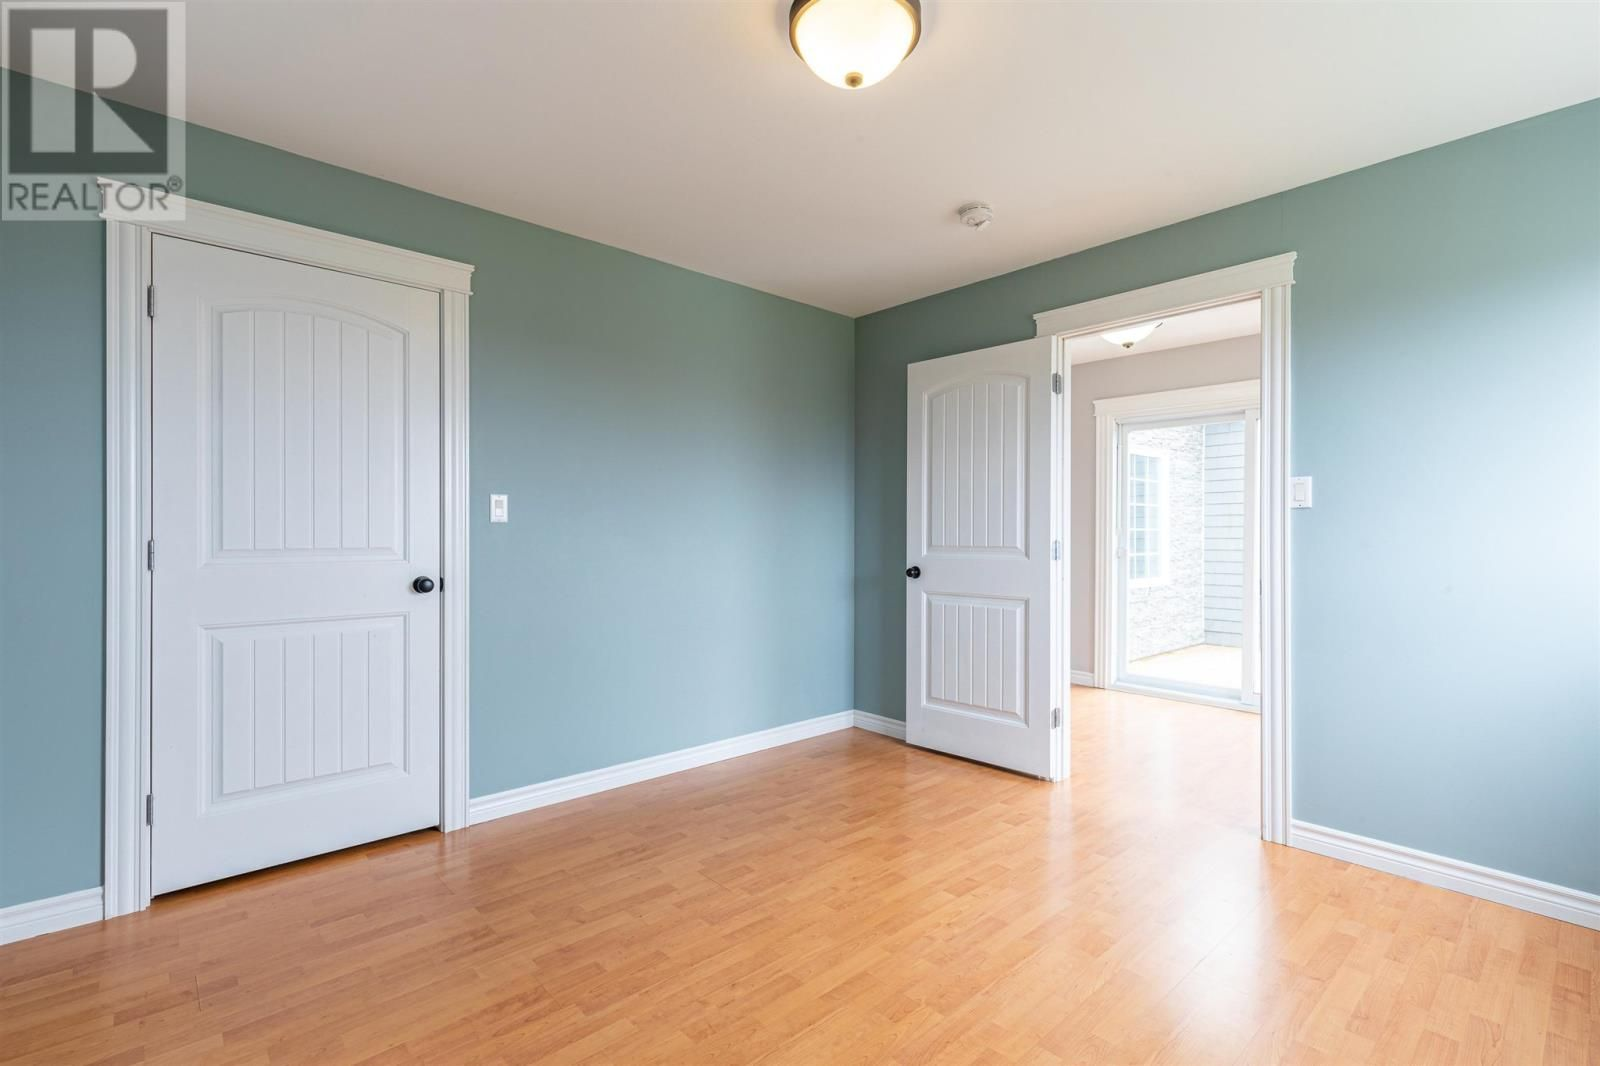 Photo 19: Photos: 5 Cherry Lane in Stratford: House for sale : MLS®# 202119303